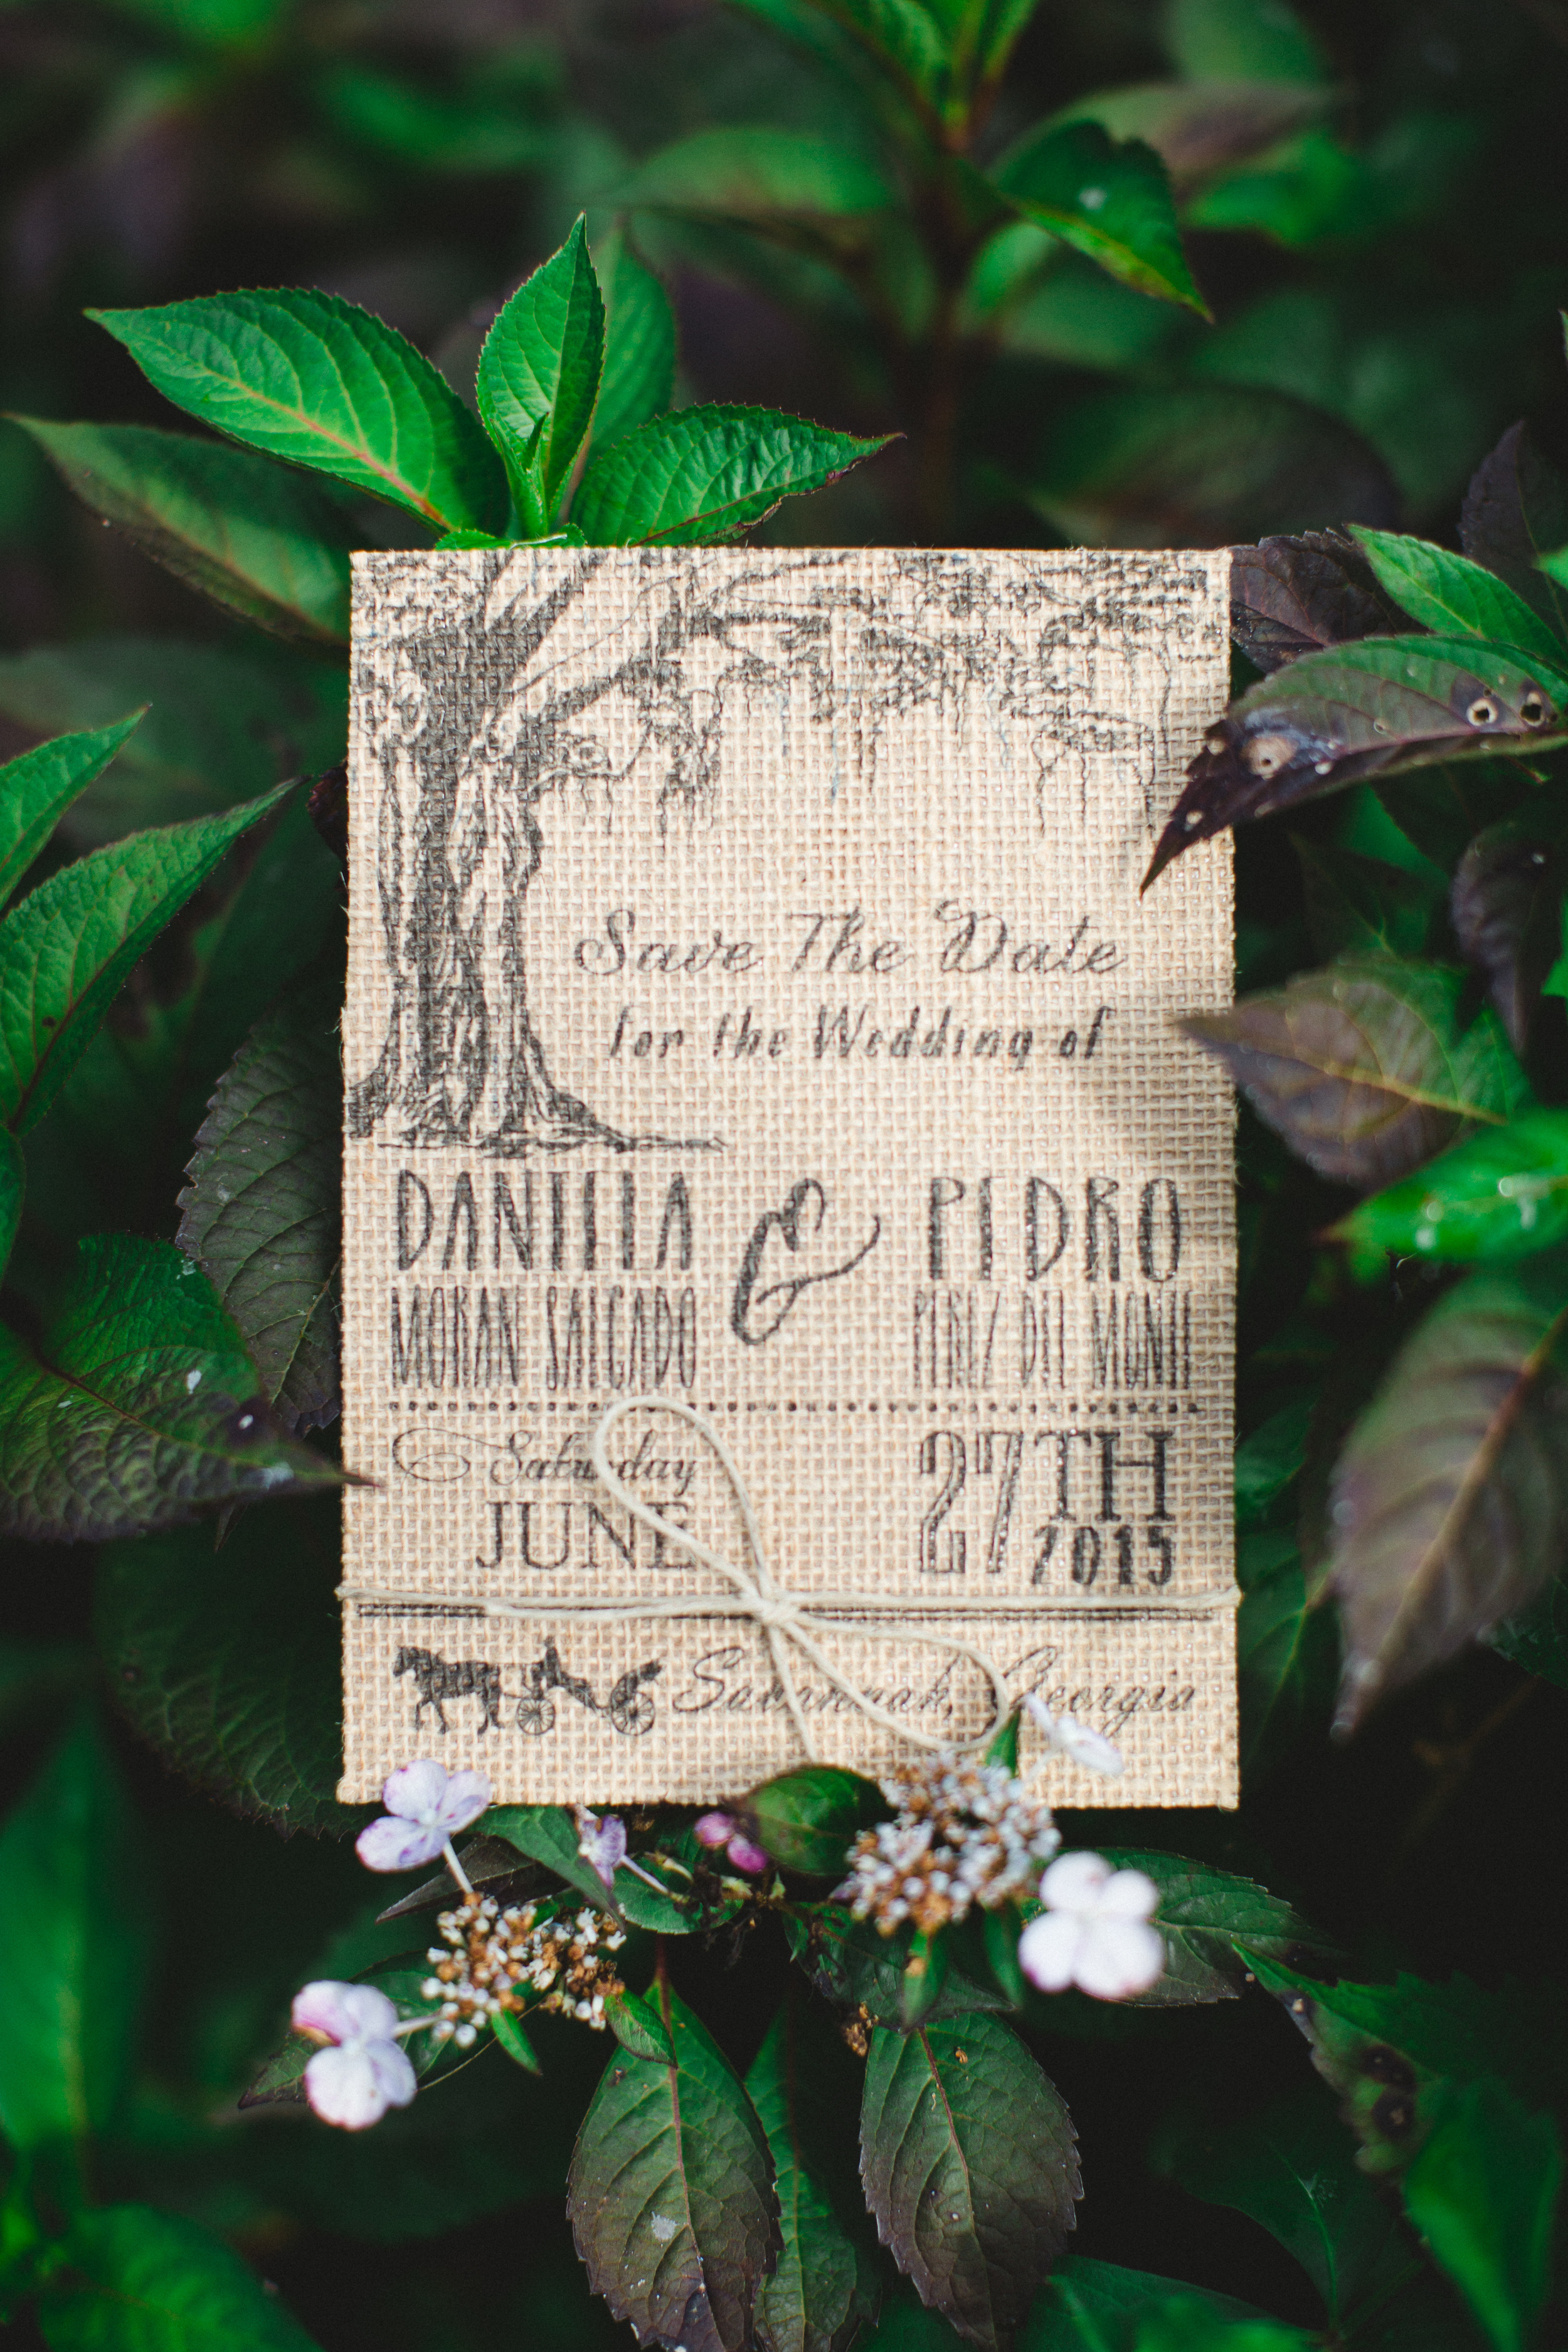 daniela-and-pedro-wedding-izzy-hudgins-photography-a-to-zinnias-whitfield-square-charles-h-morris-center-wedding-ivoyy-and-beau-bridal-boutique-dorie-hayley-paige-savannah-wedding-planner-savannah-bridal-boutique-savannah-weddings-1.jpg